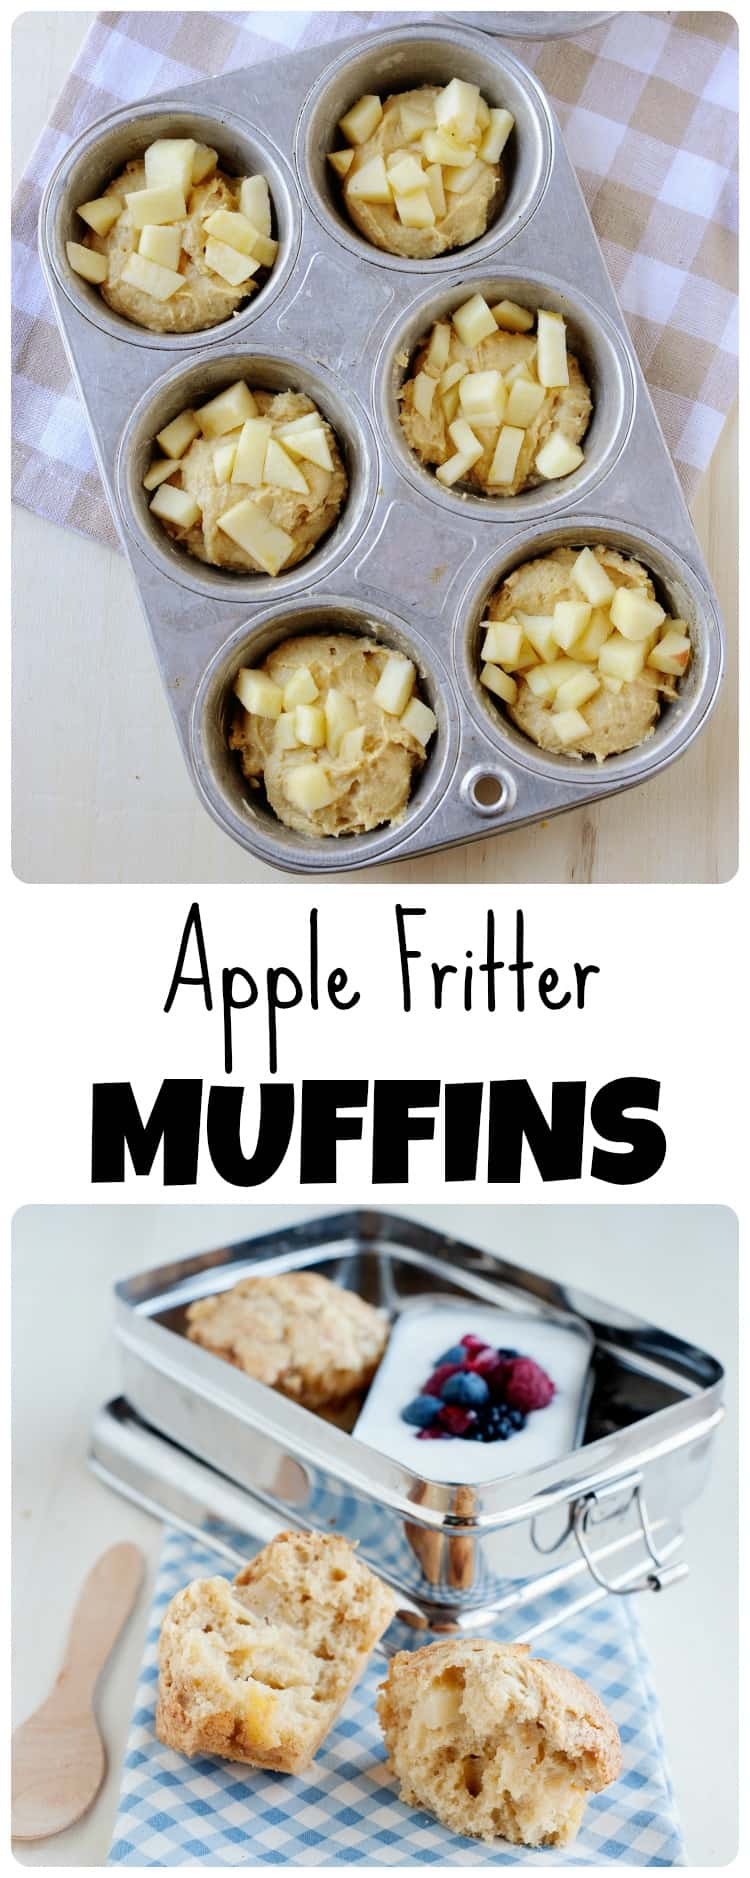 These baked apple fritter muffins will be devoured by kids and adults alike! They are much healthier than the original & filled with the same classic taste.